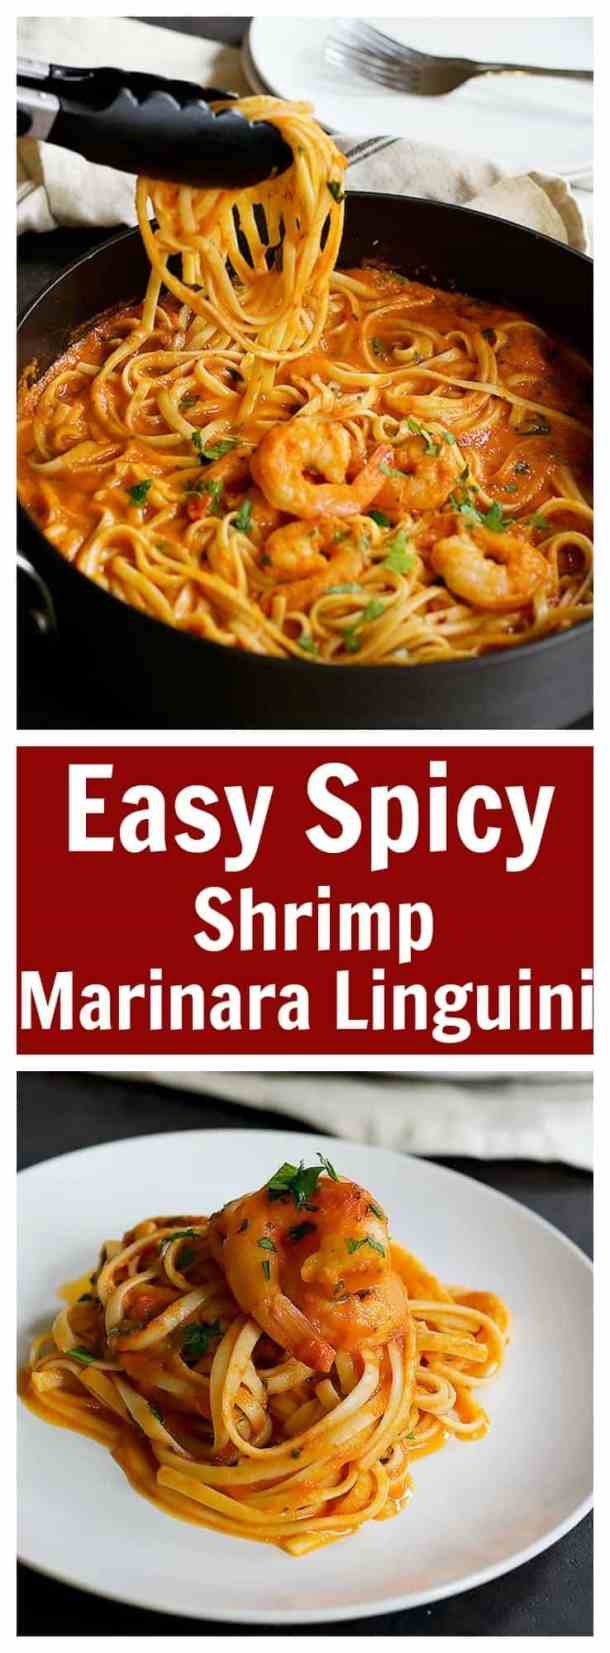 This Easy Spicy Shrimp Marinara Linguine will beon your table in less than 45 minutes and it tastes amazing! With the right amount of spiciness, this pasta will become everyone's favorite!